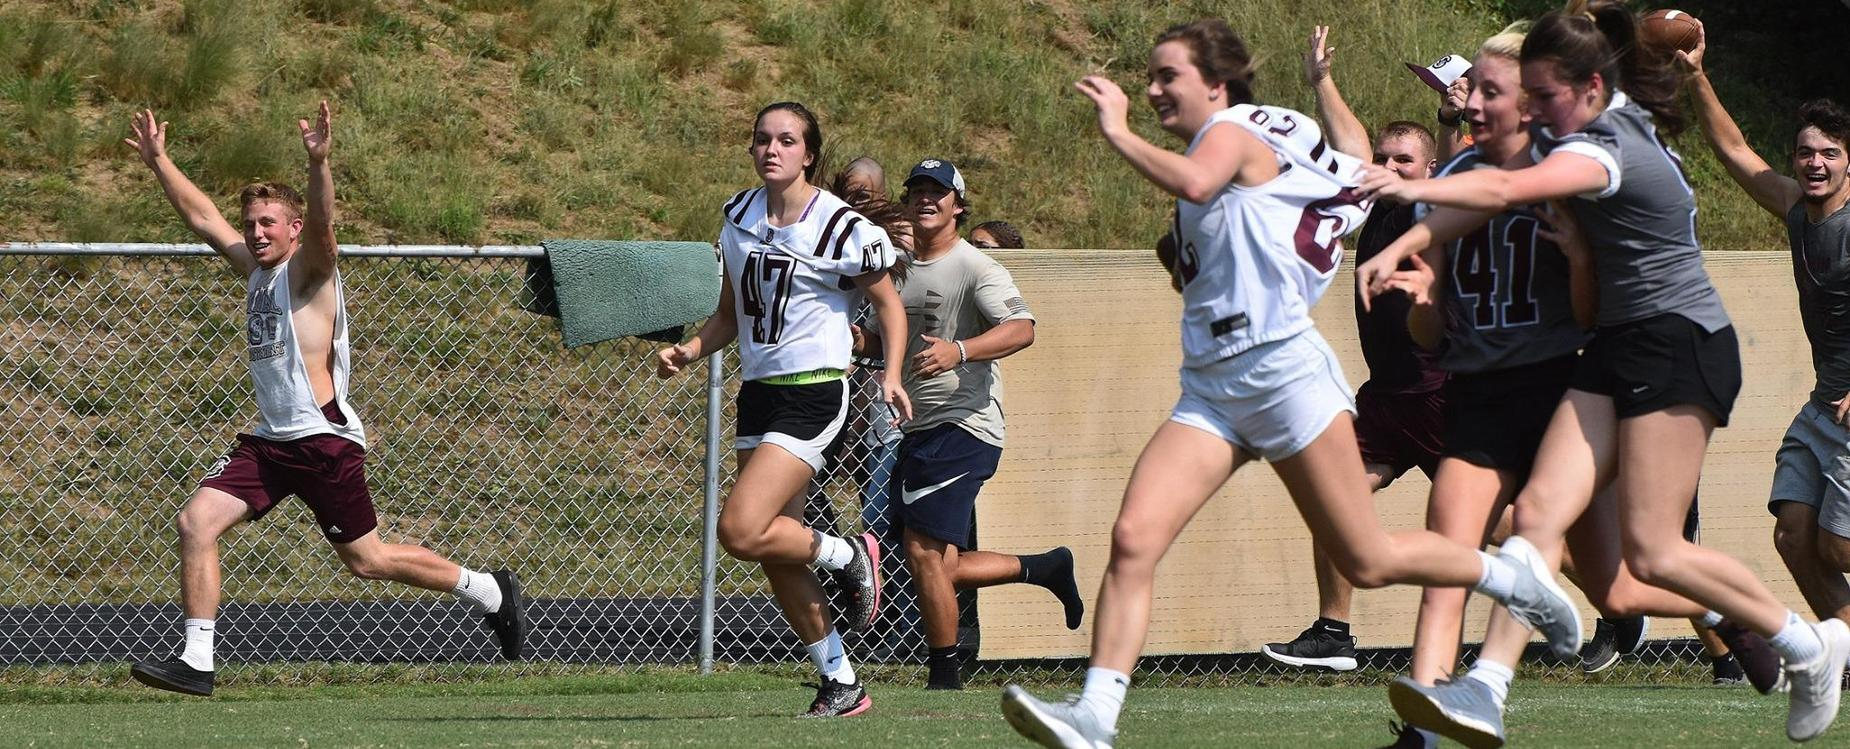 Seniors for the TD in Powderpuff action